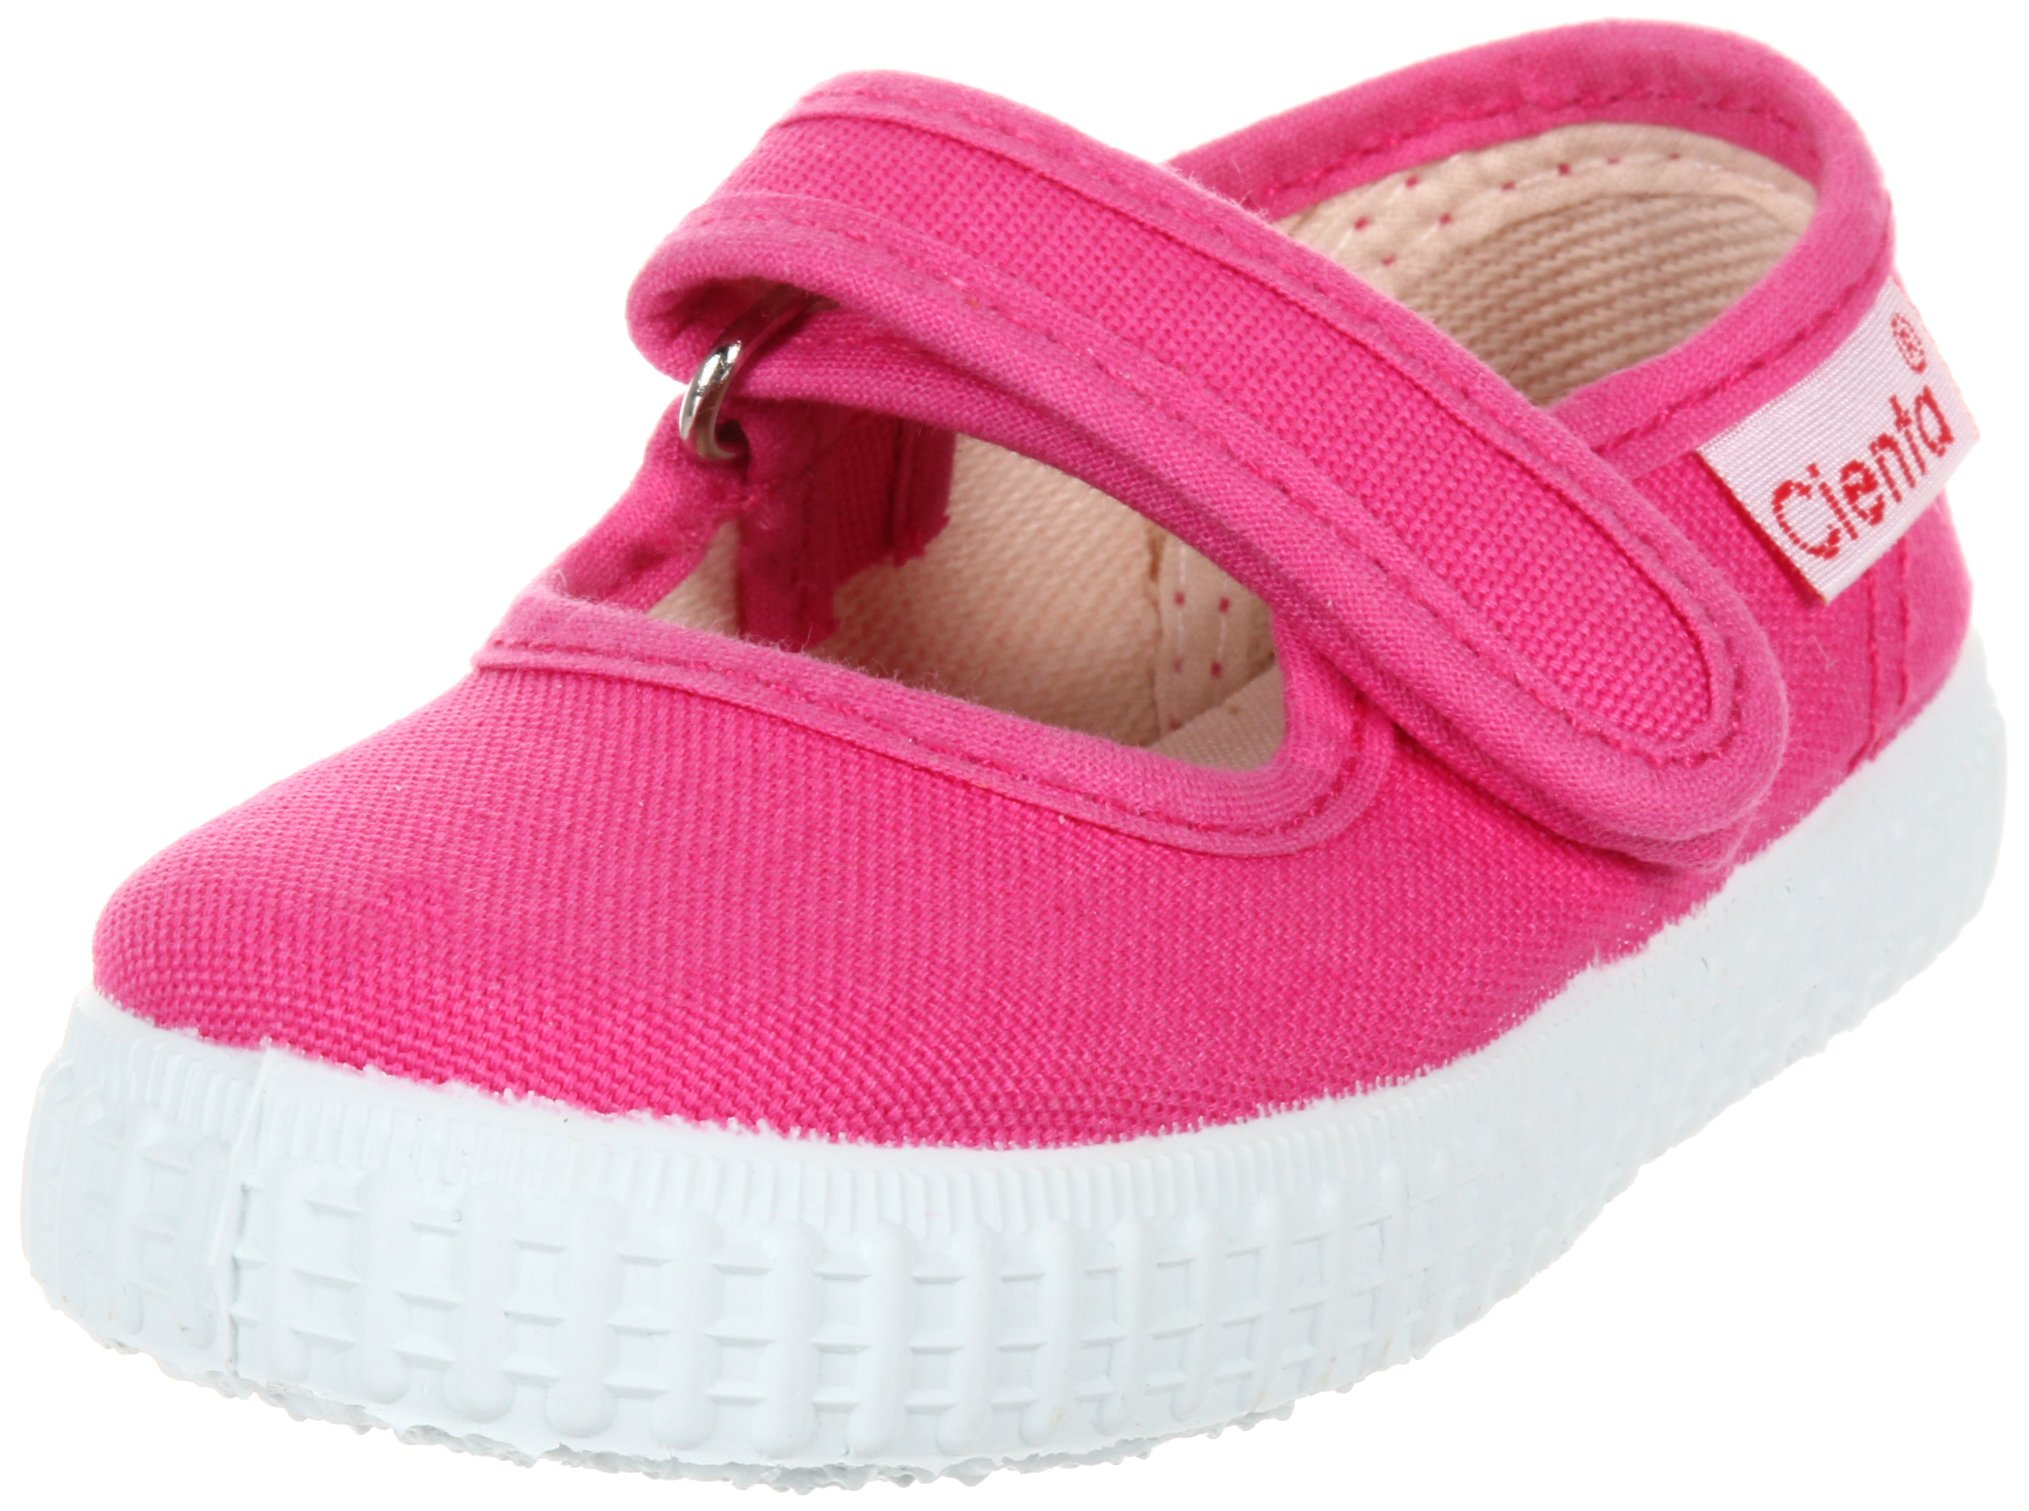 Cienta Mary Jane Sneakers for Girls – Fuchsia Casual Shoes with Adjustable Strap, 22 EU (6 M US Toddler)